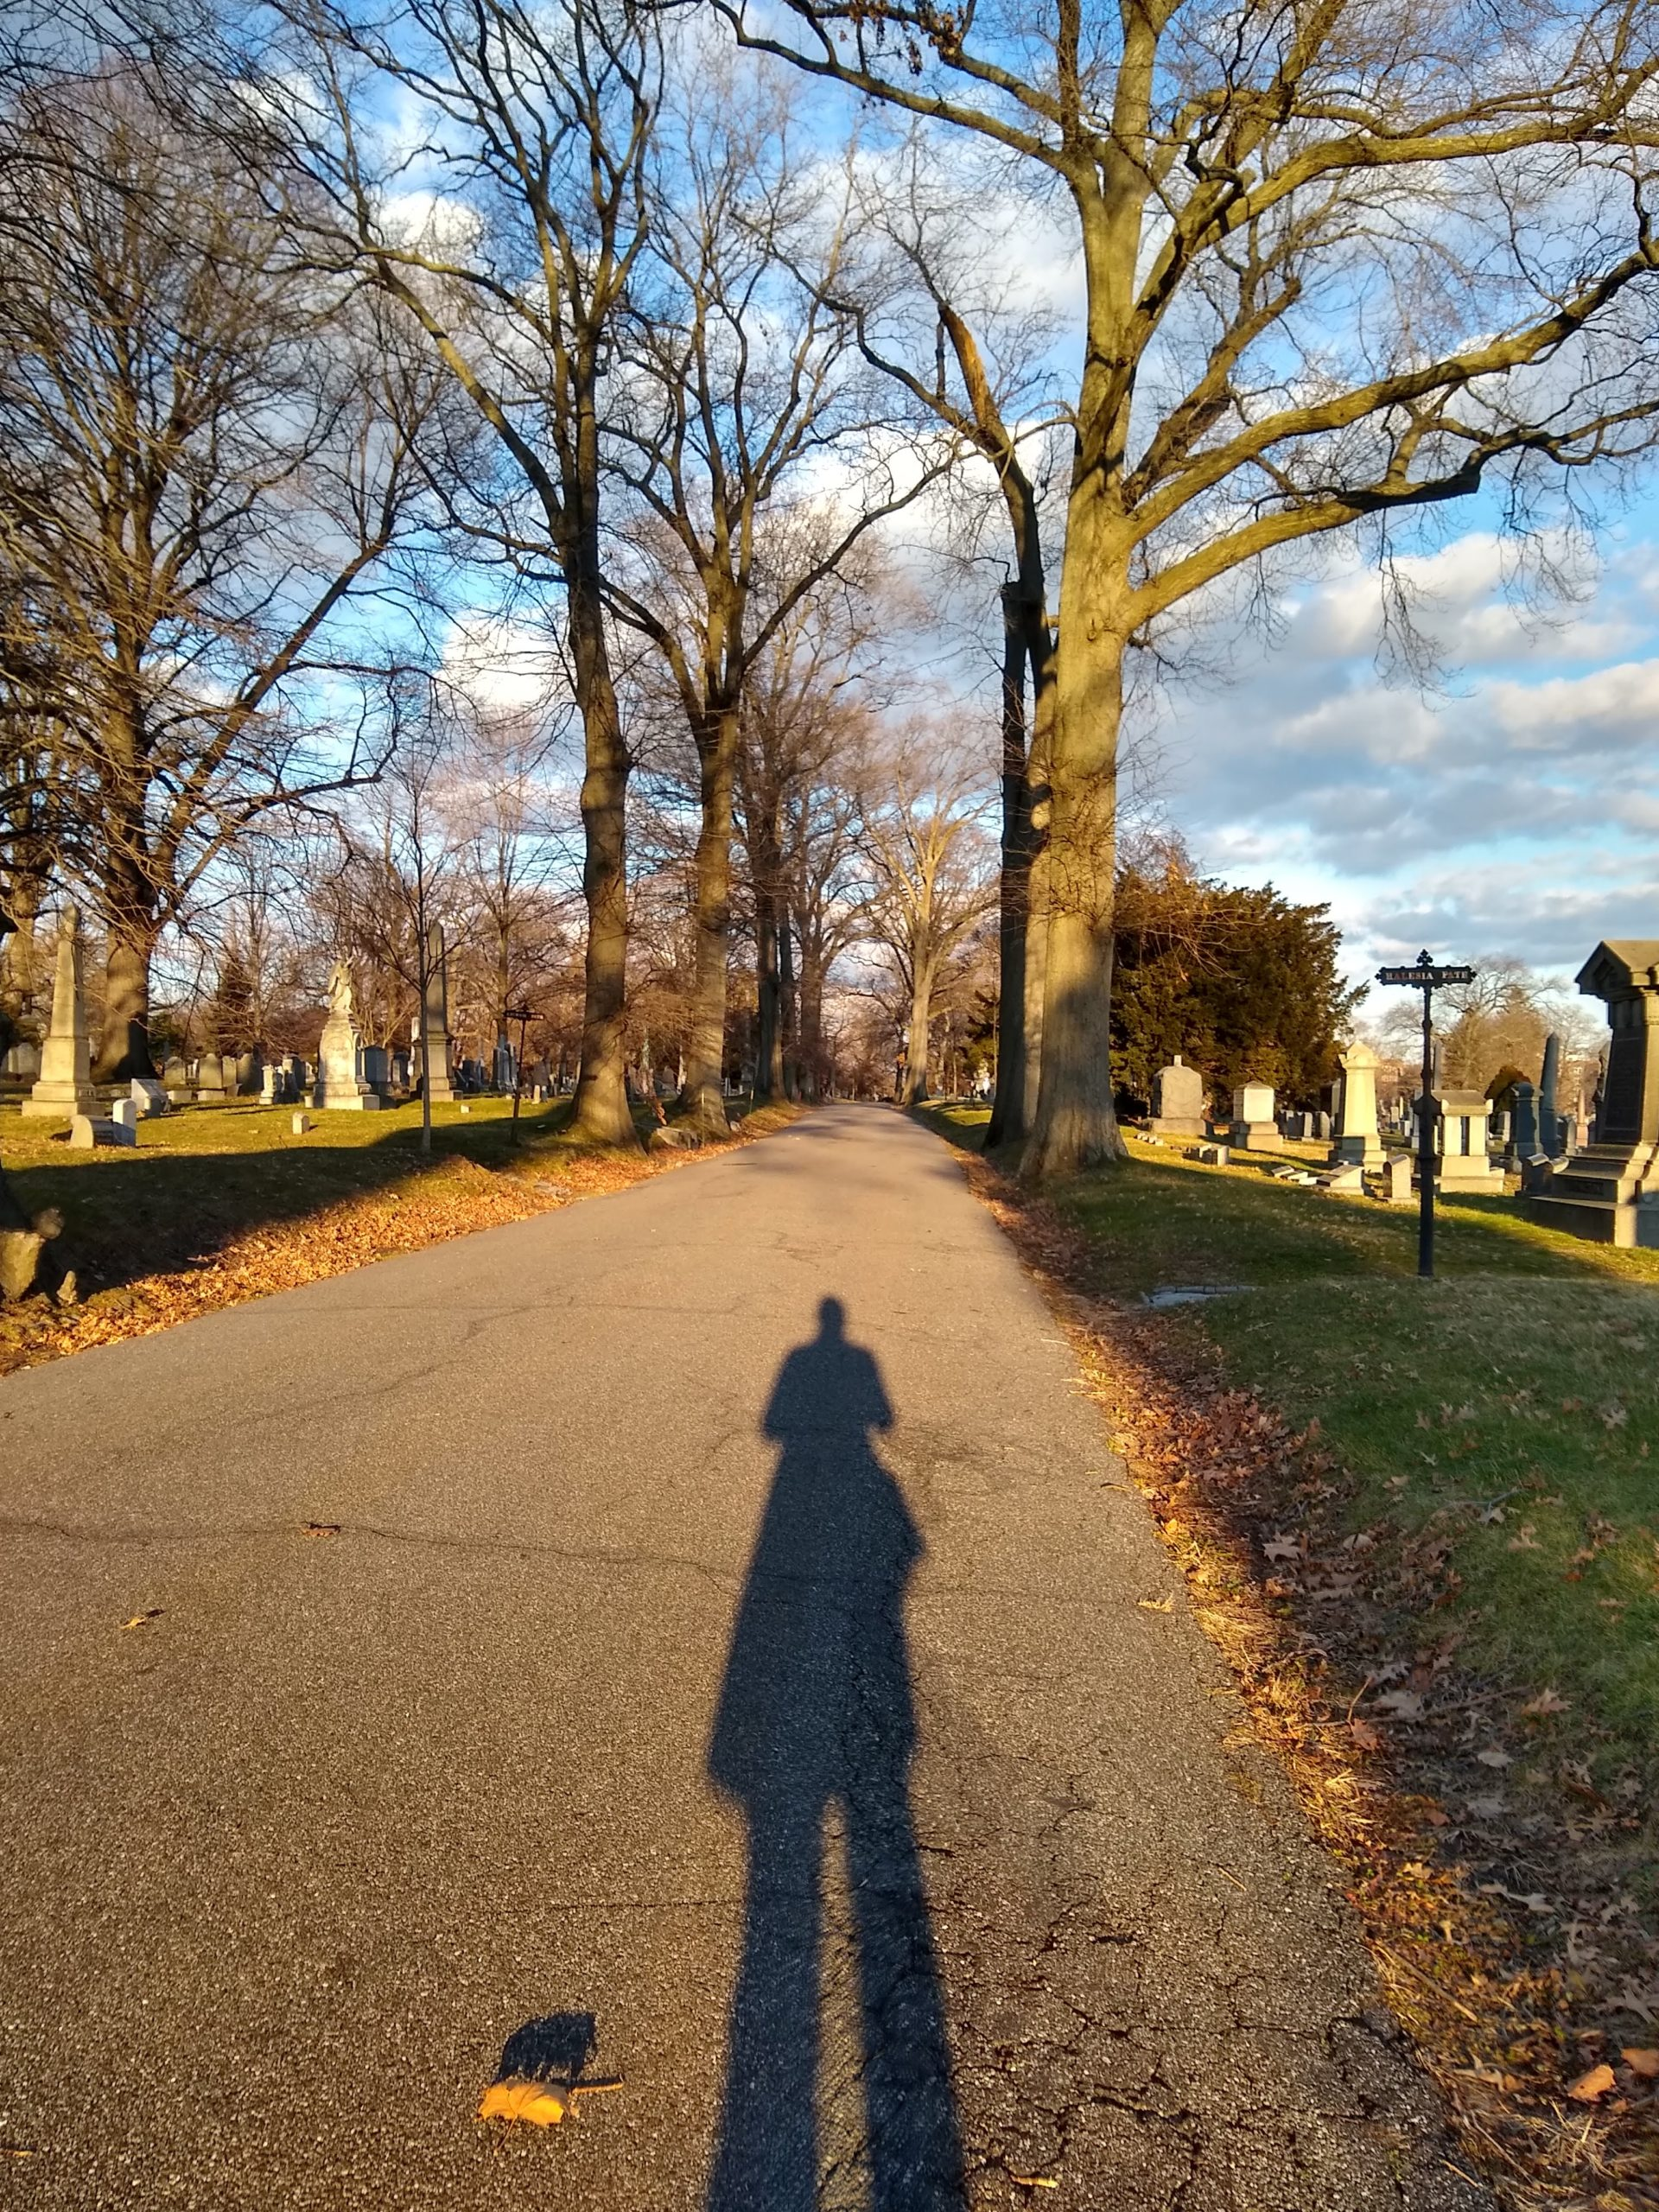 The silhouette of a person on a path through a wooded cemetery.